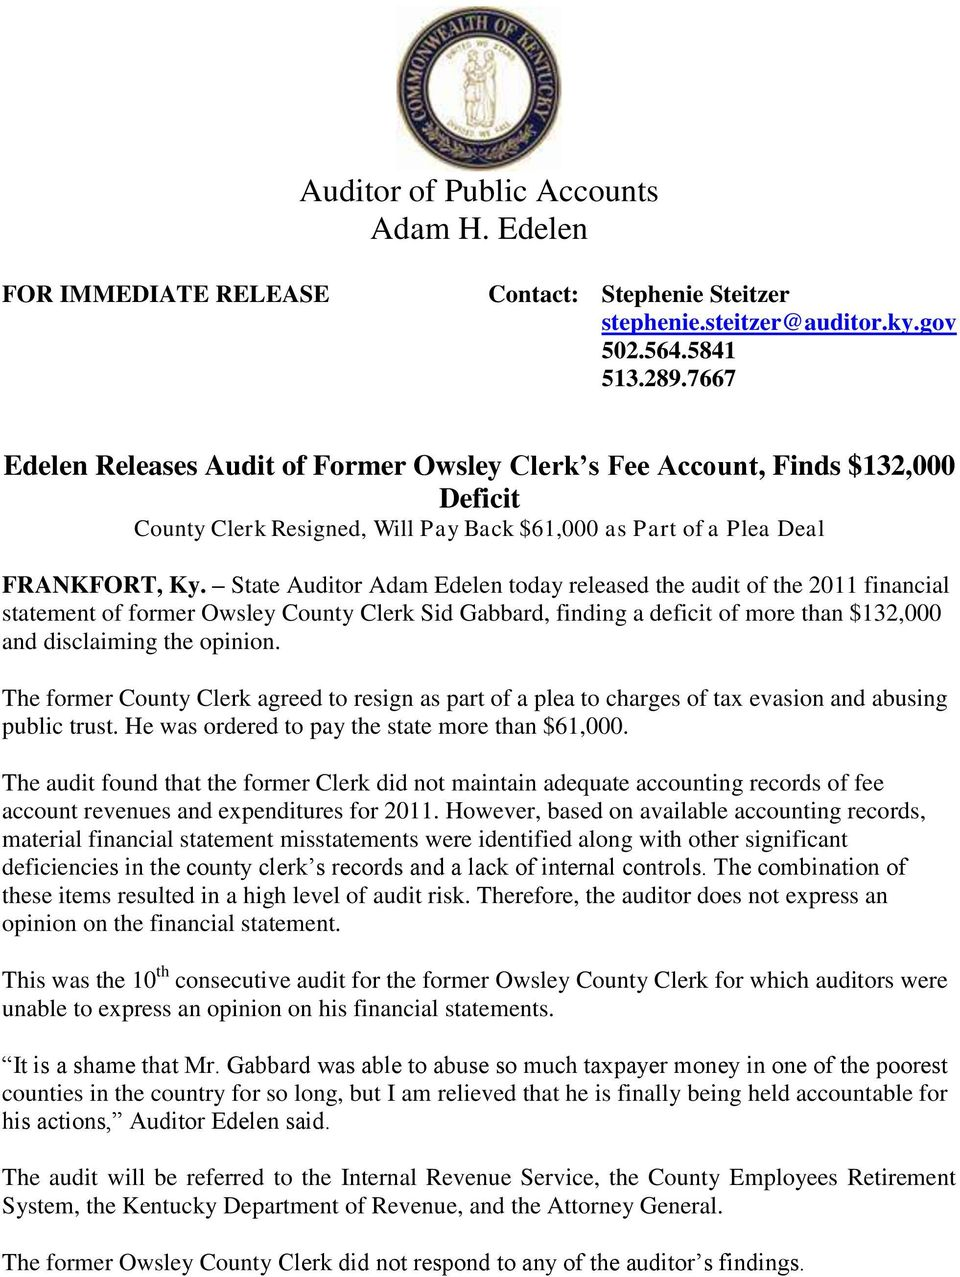 State Auditor Adam Edelen today released the audit of the 2011 financial statement of former Owsley County Clerk Sid Gabbard, finding a deficit of more than $132,000 and disclaiming the opinion.